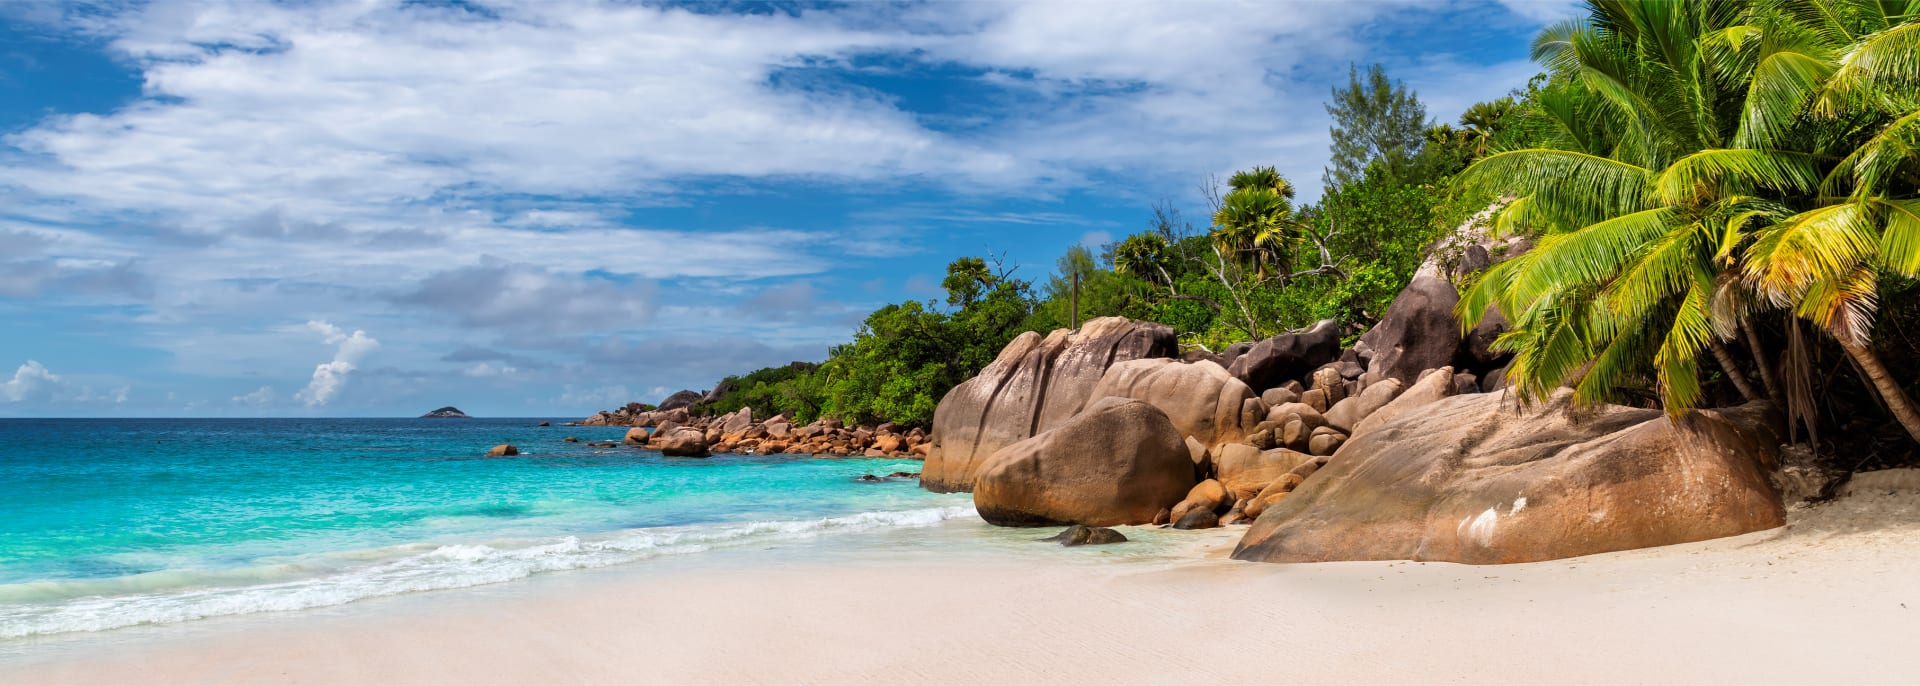 Untouched and beautiful Anse Lazio Beach on Praslin island, Seychelles